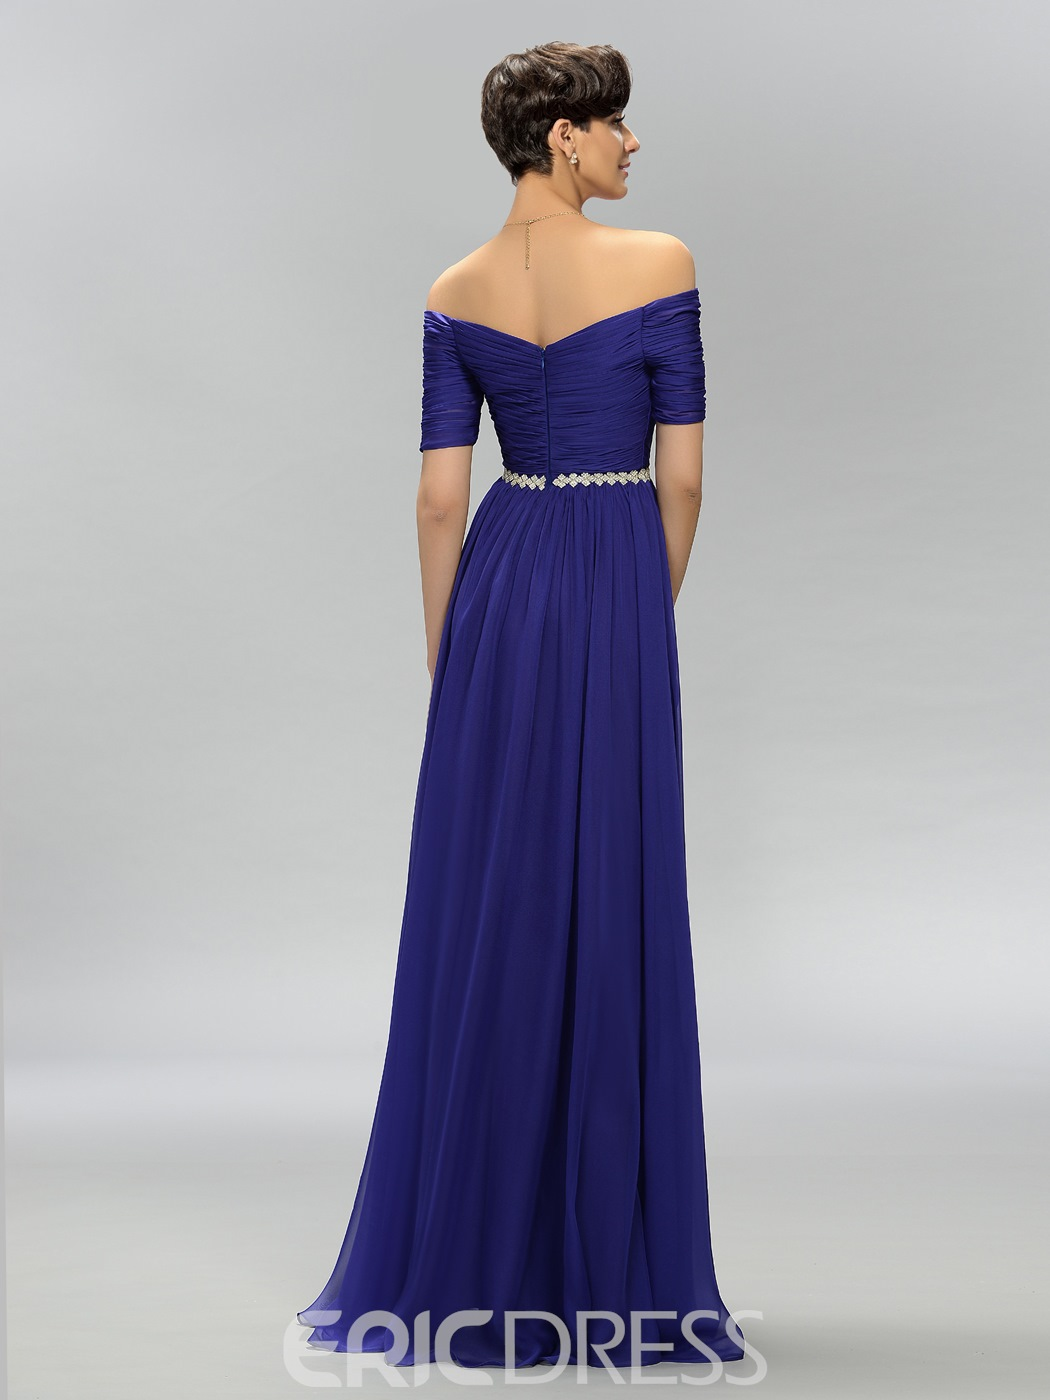 Charming A-Line Off the Shoulder Pleats Evening Dress